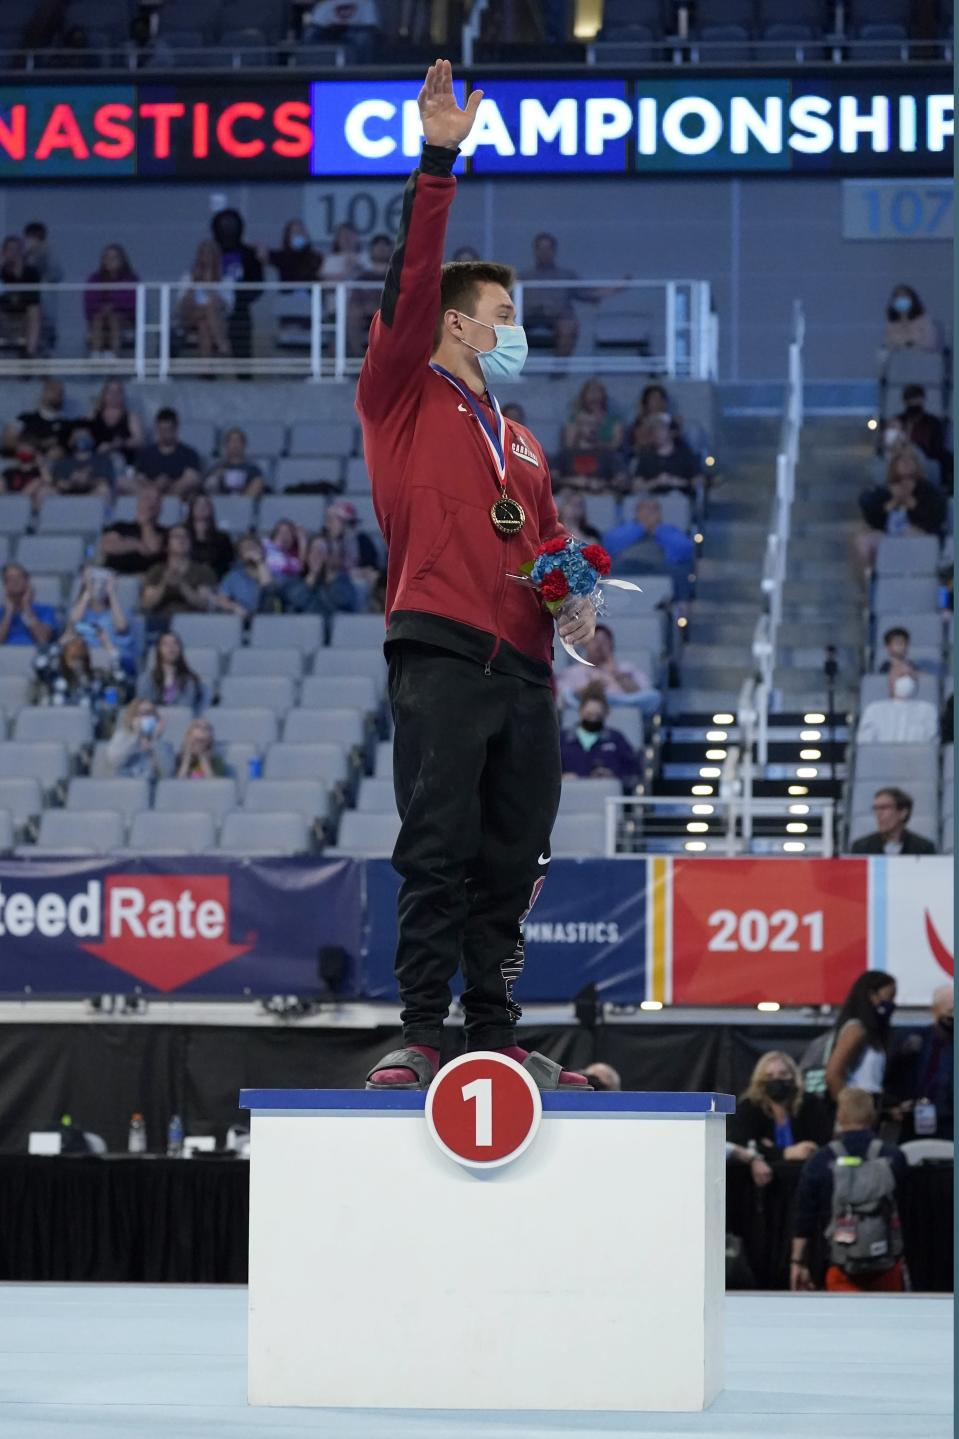 Brody Malone acknowledges cheers from fans after being awarded first place in the men's overall during the U.S. Gymnastics Championships, Saturday, June 5, 2021, in Fort Worth, Texas. (AP Photo/Tony Gutierrez)